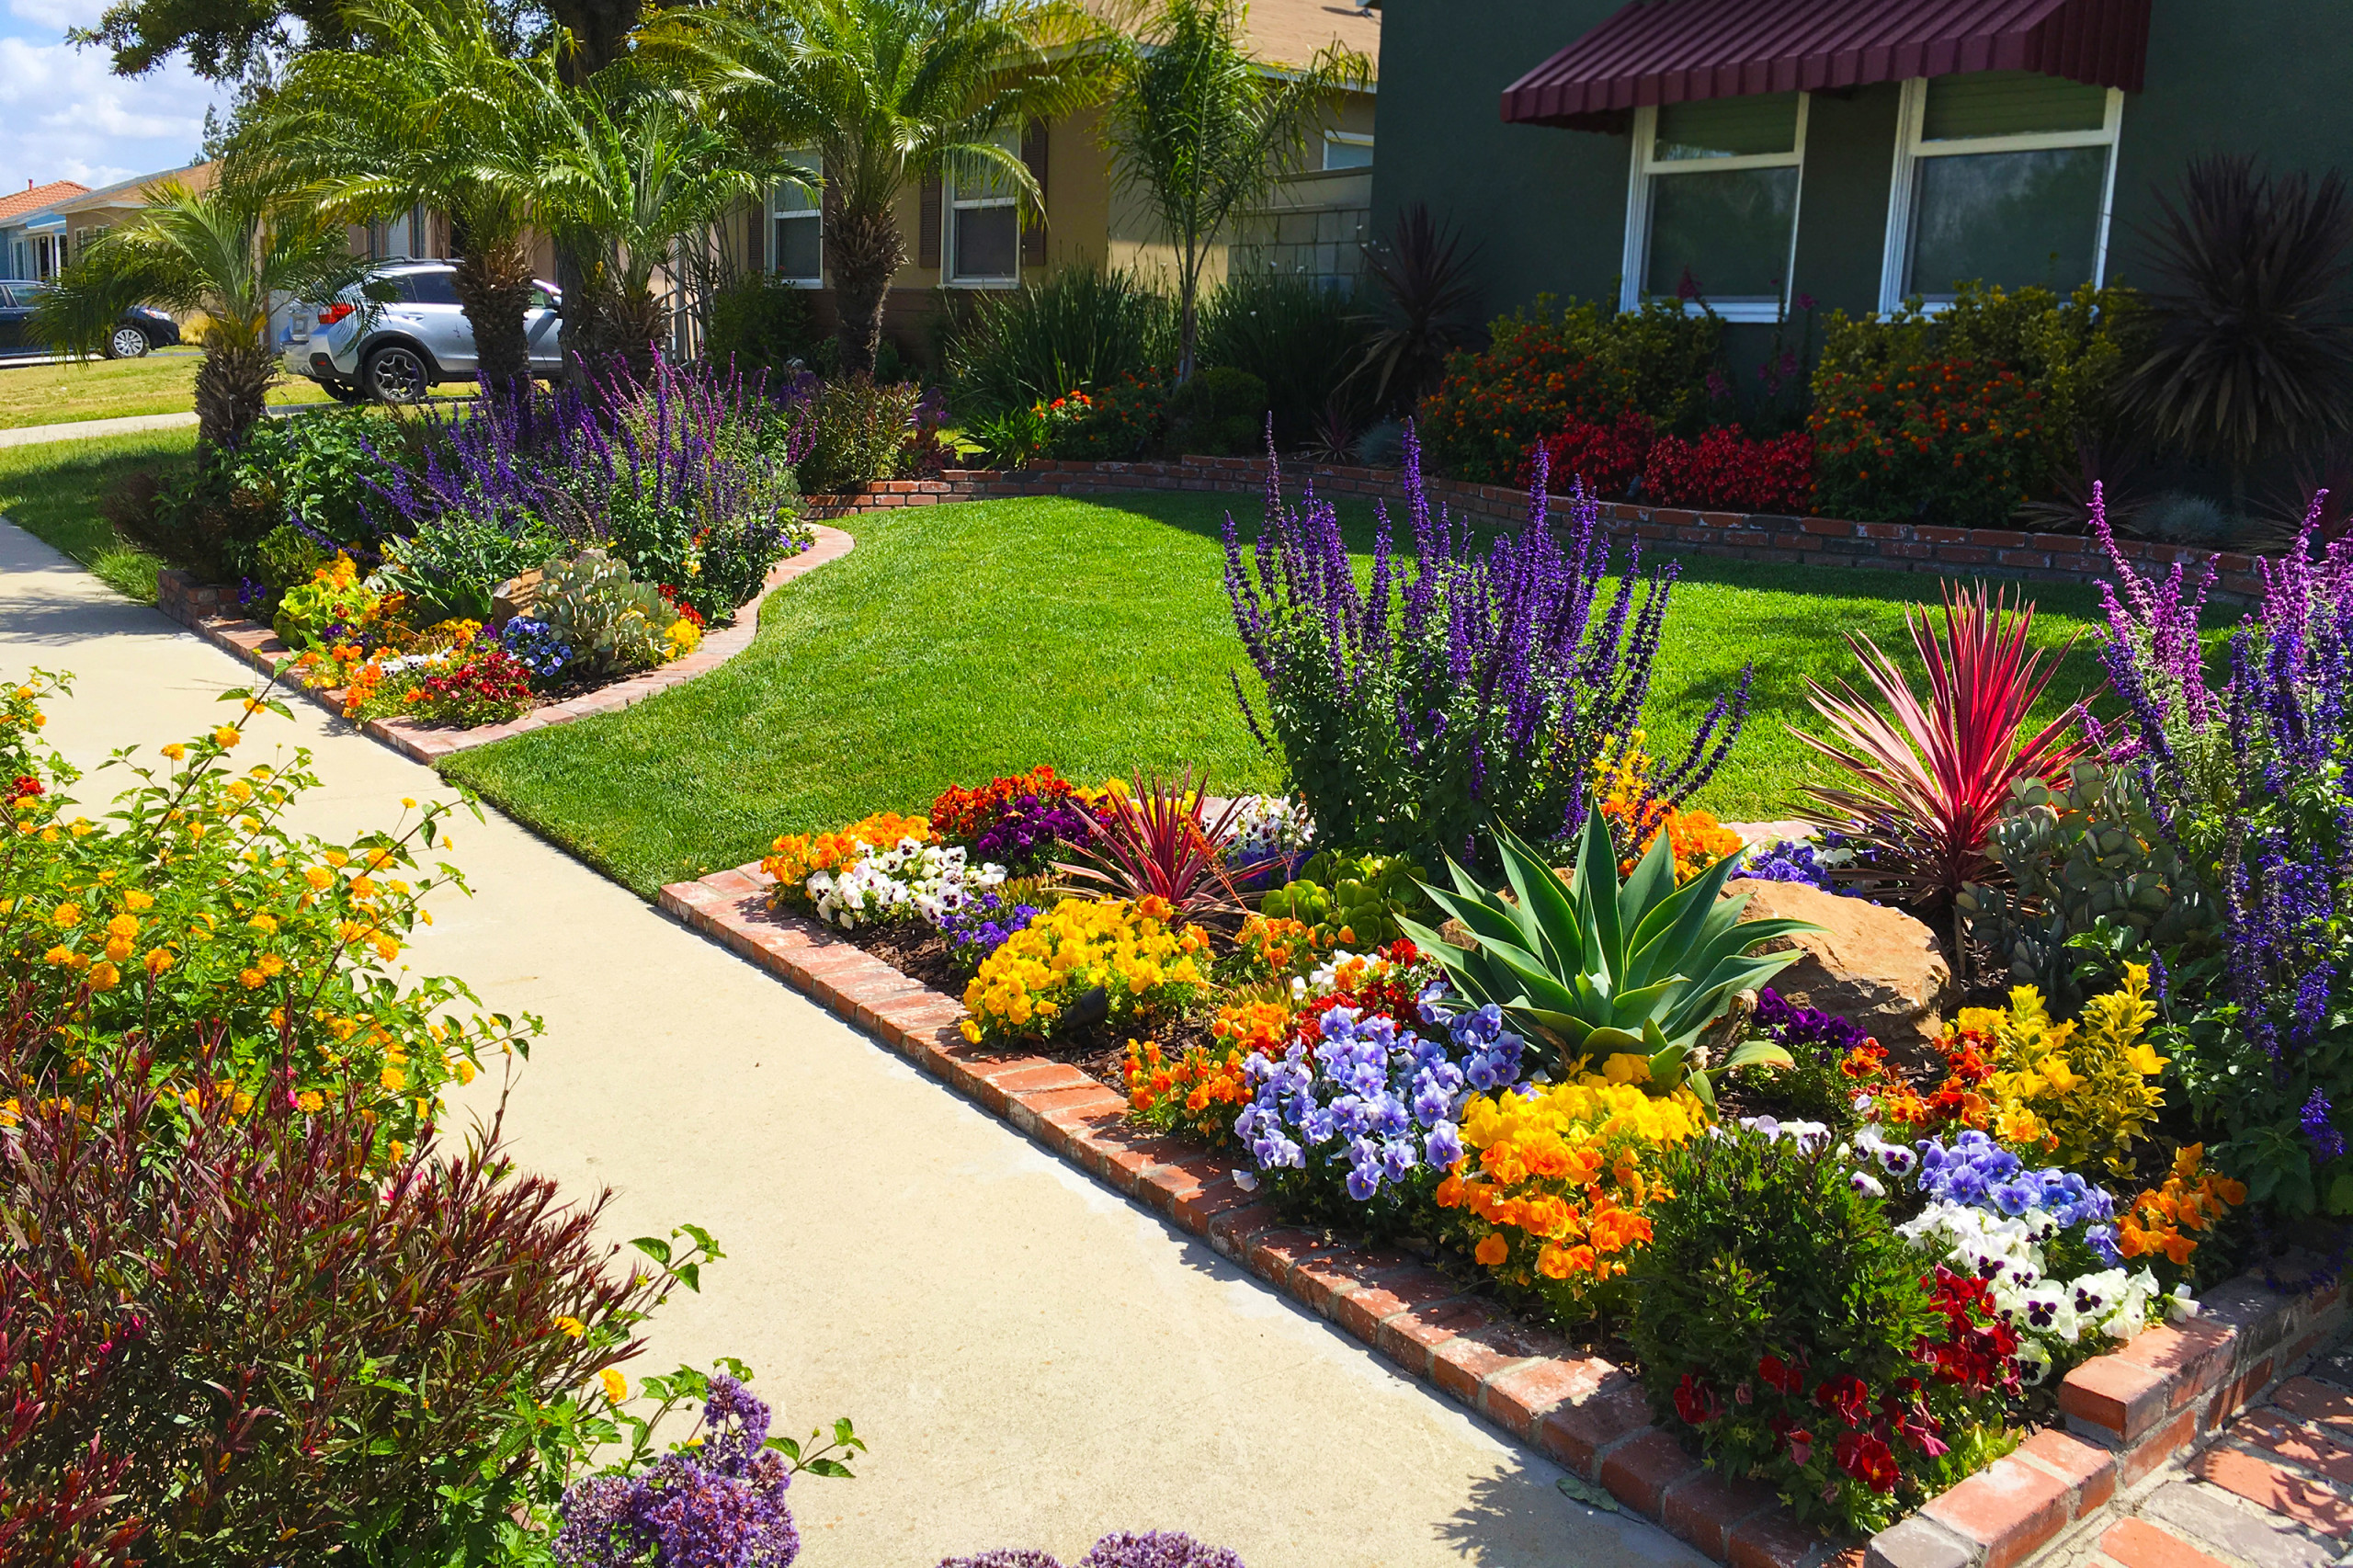 Landscaping Companies Offer